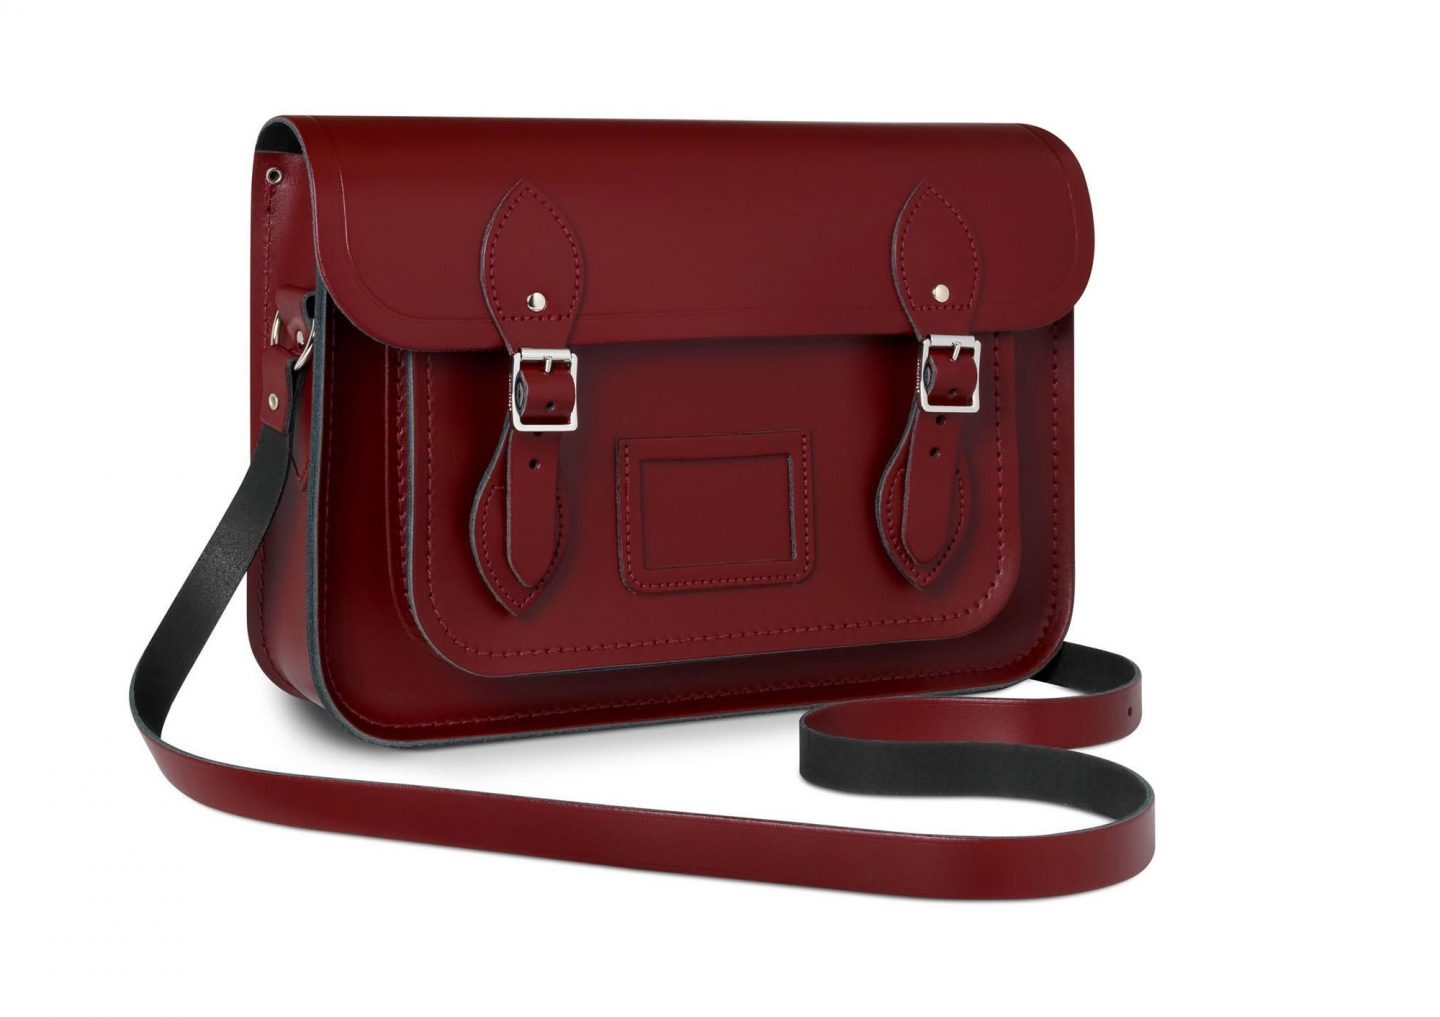 cambridge satchel strap bag review